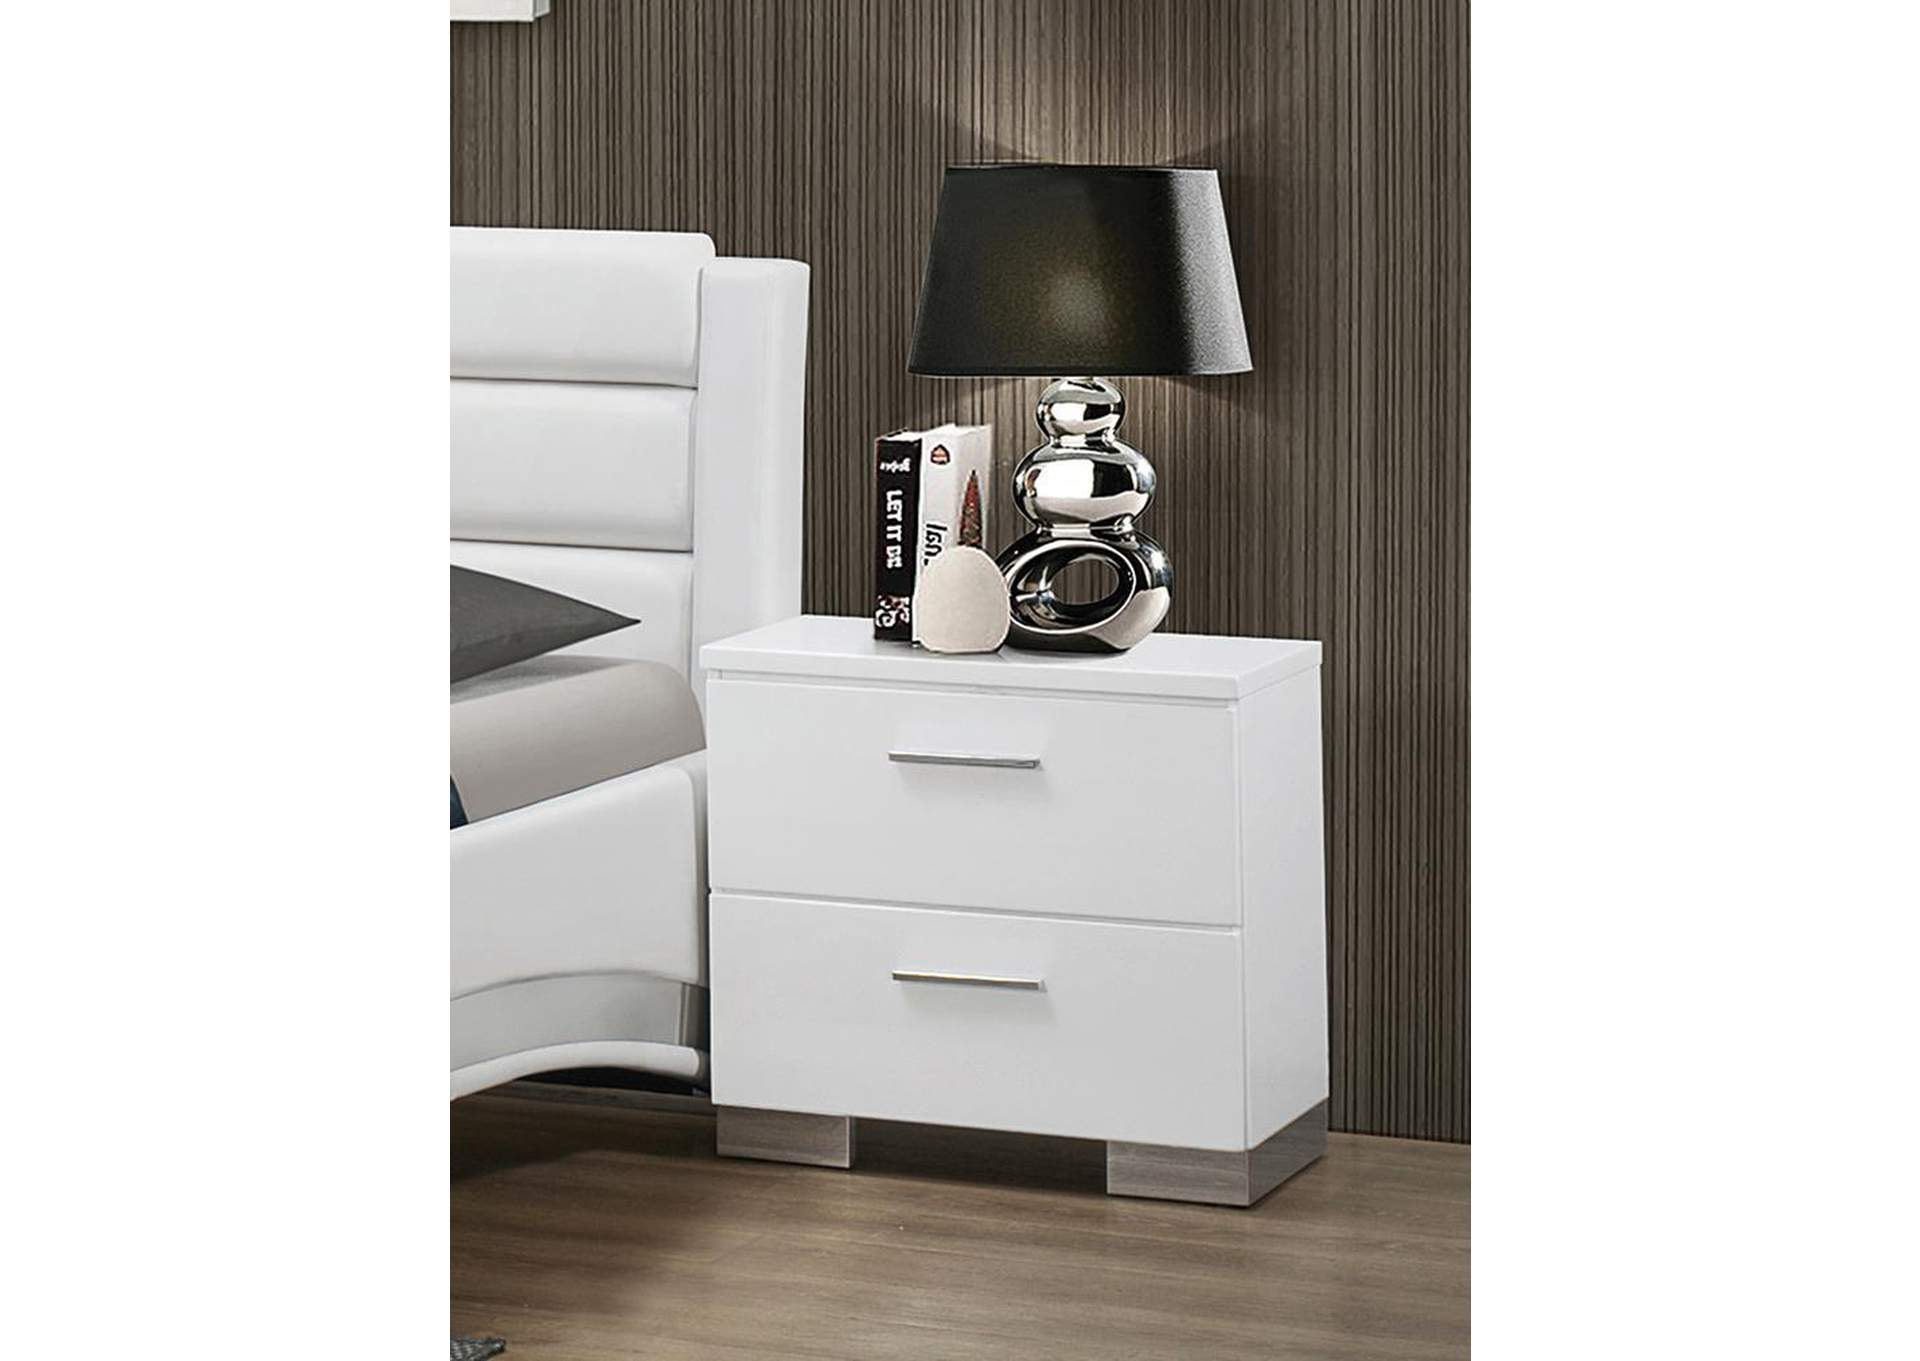 Davis home furniture asheville nc high gloss white night stand Davis home furniture asheville hours